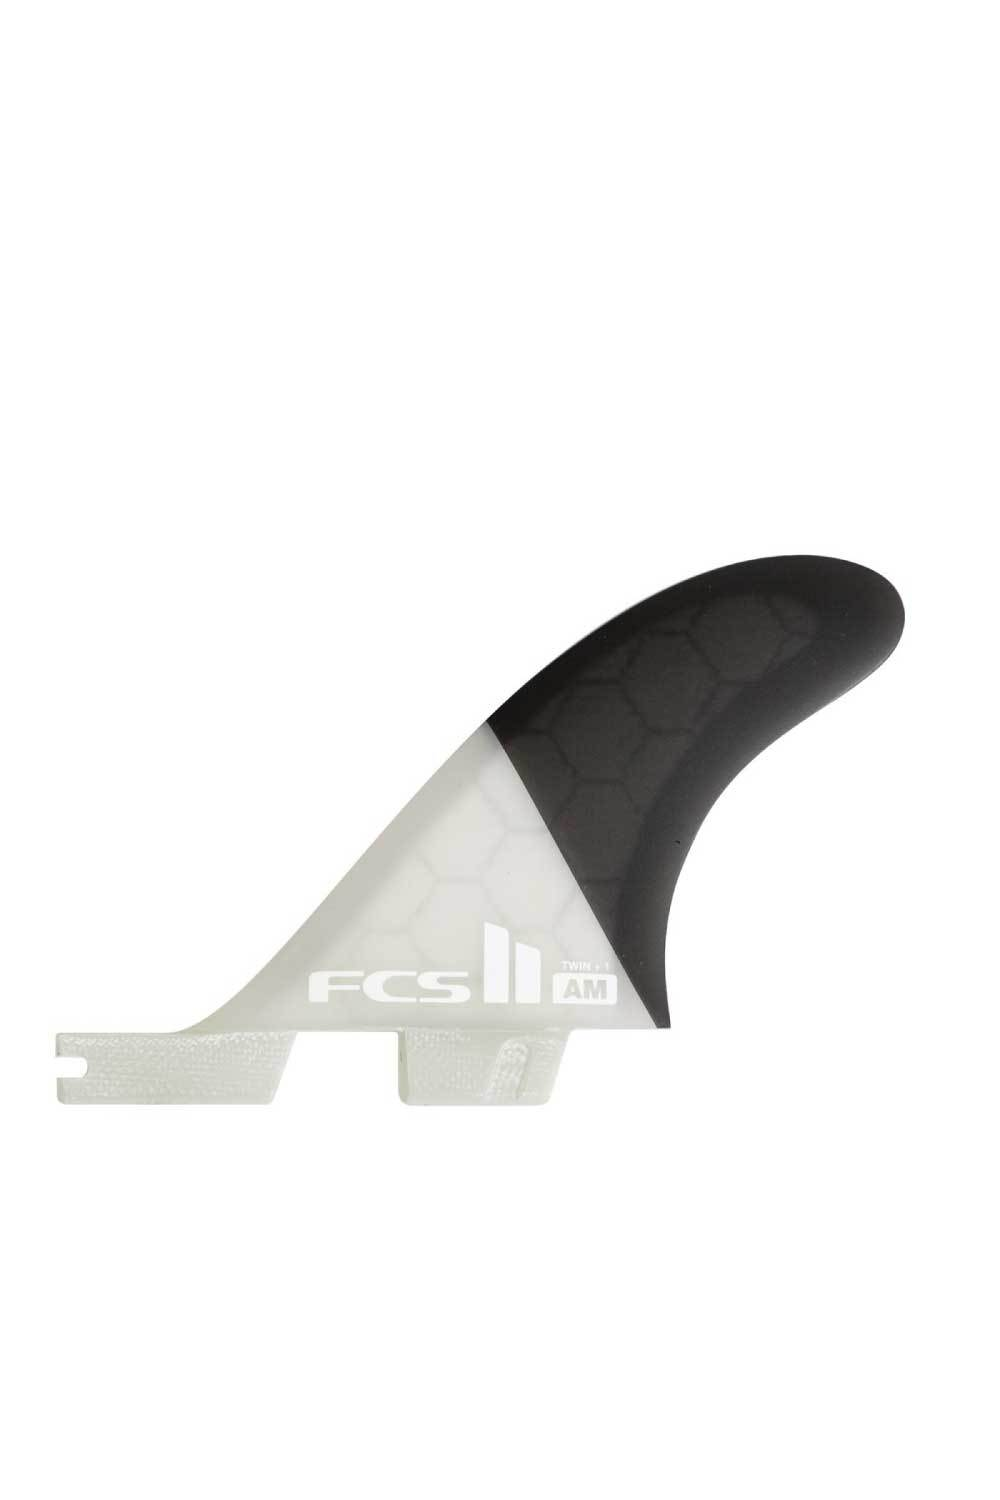 FCS 2 AM PC Twin Fin Set + 1